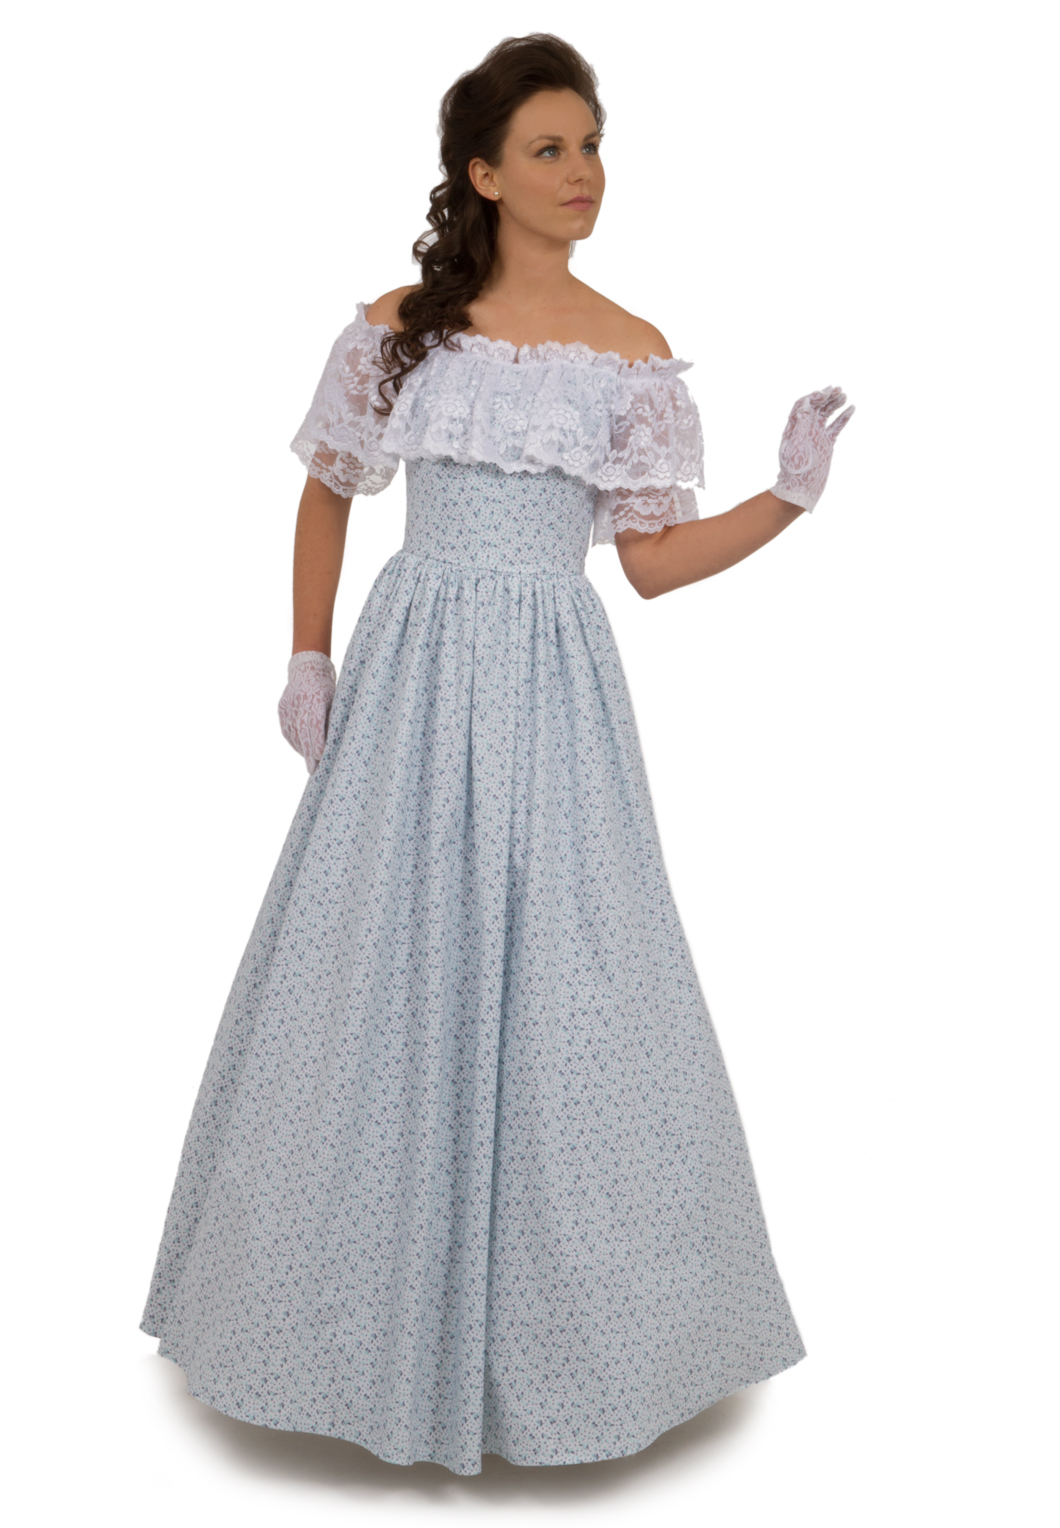 Victorian Cotton Gown Recollections